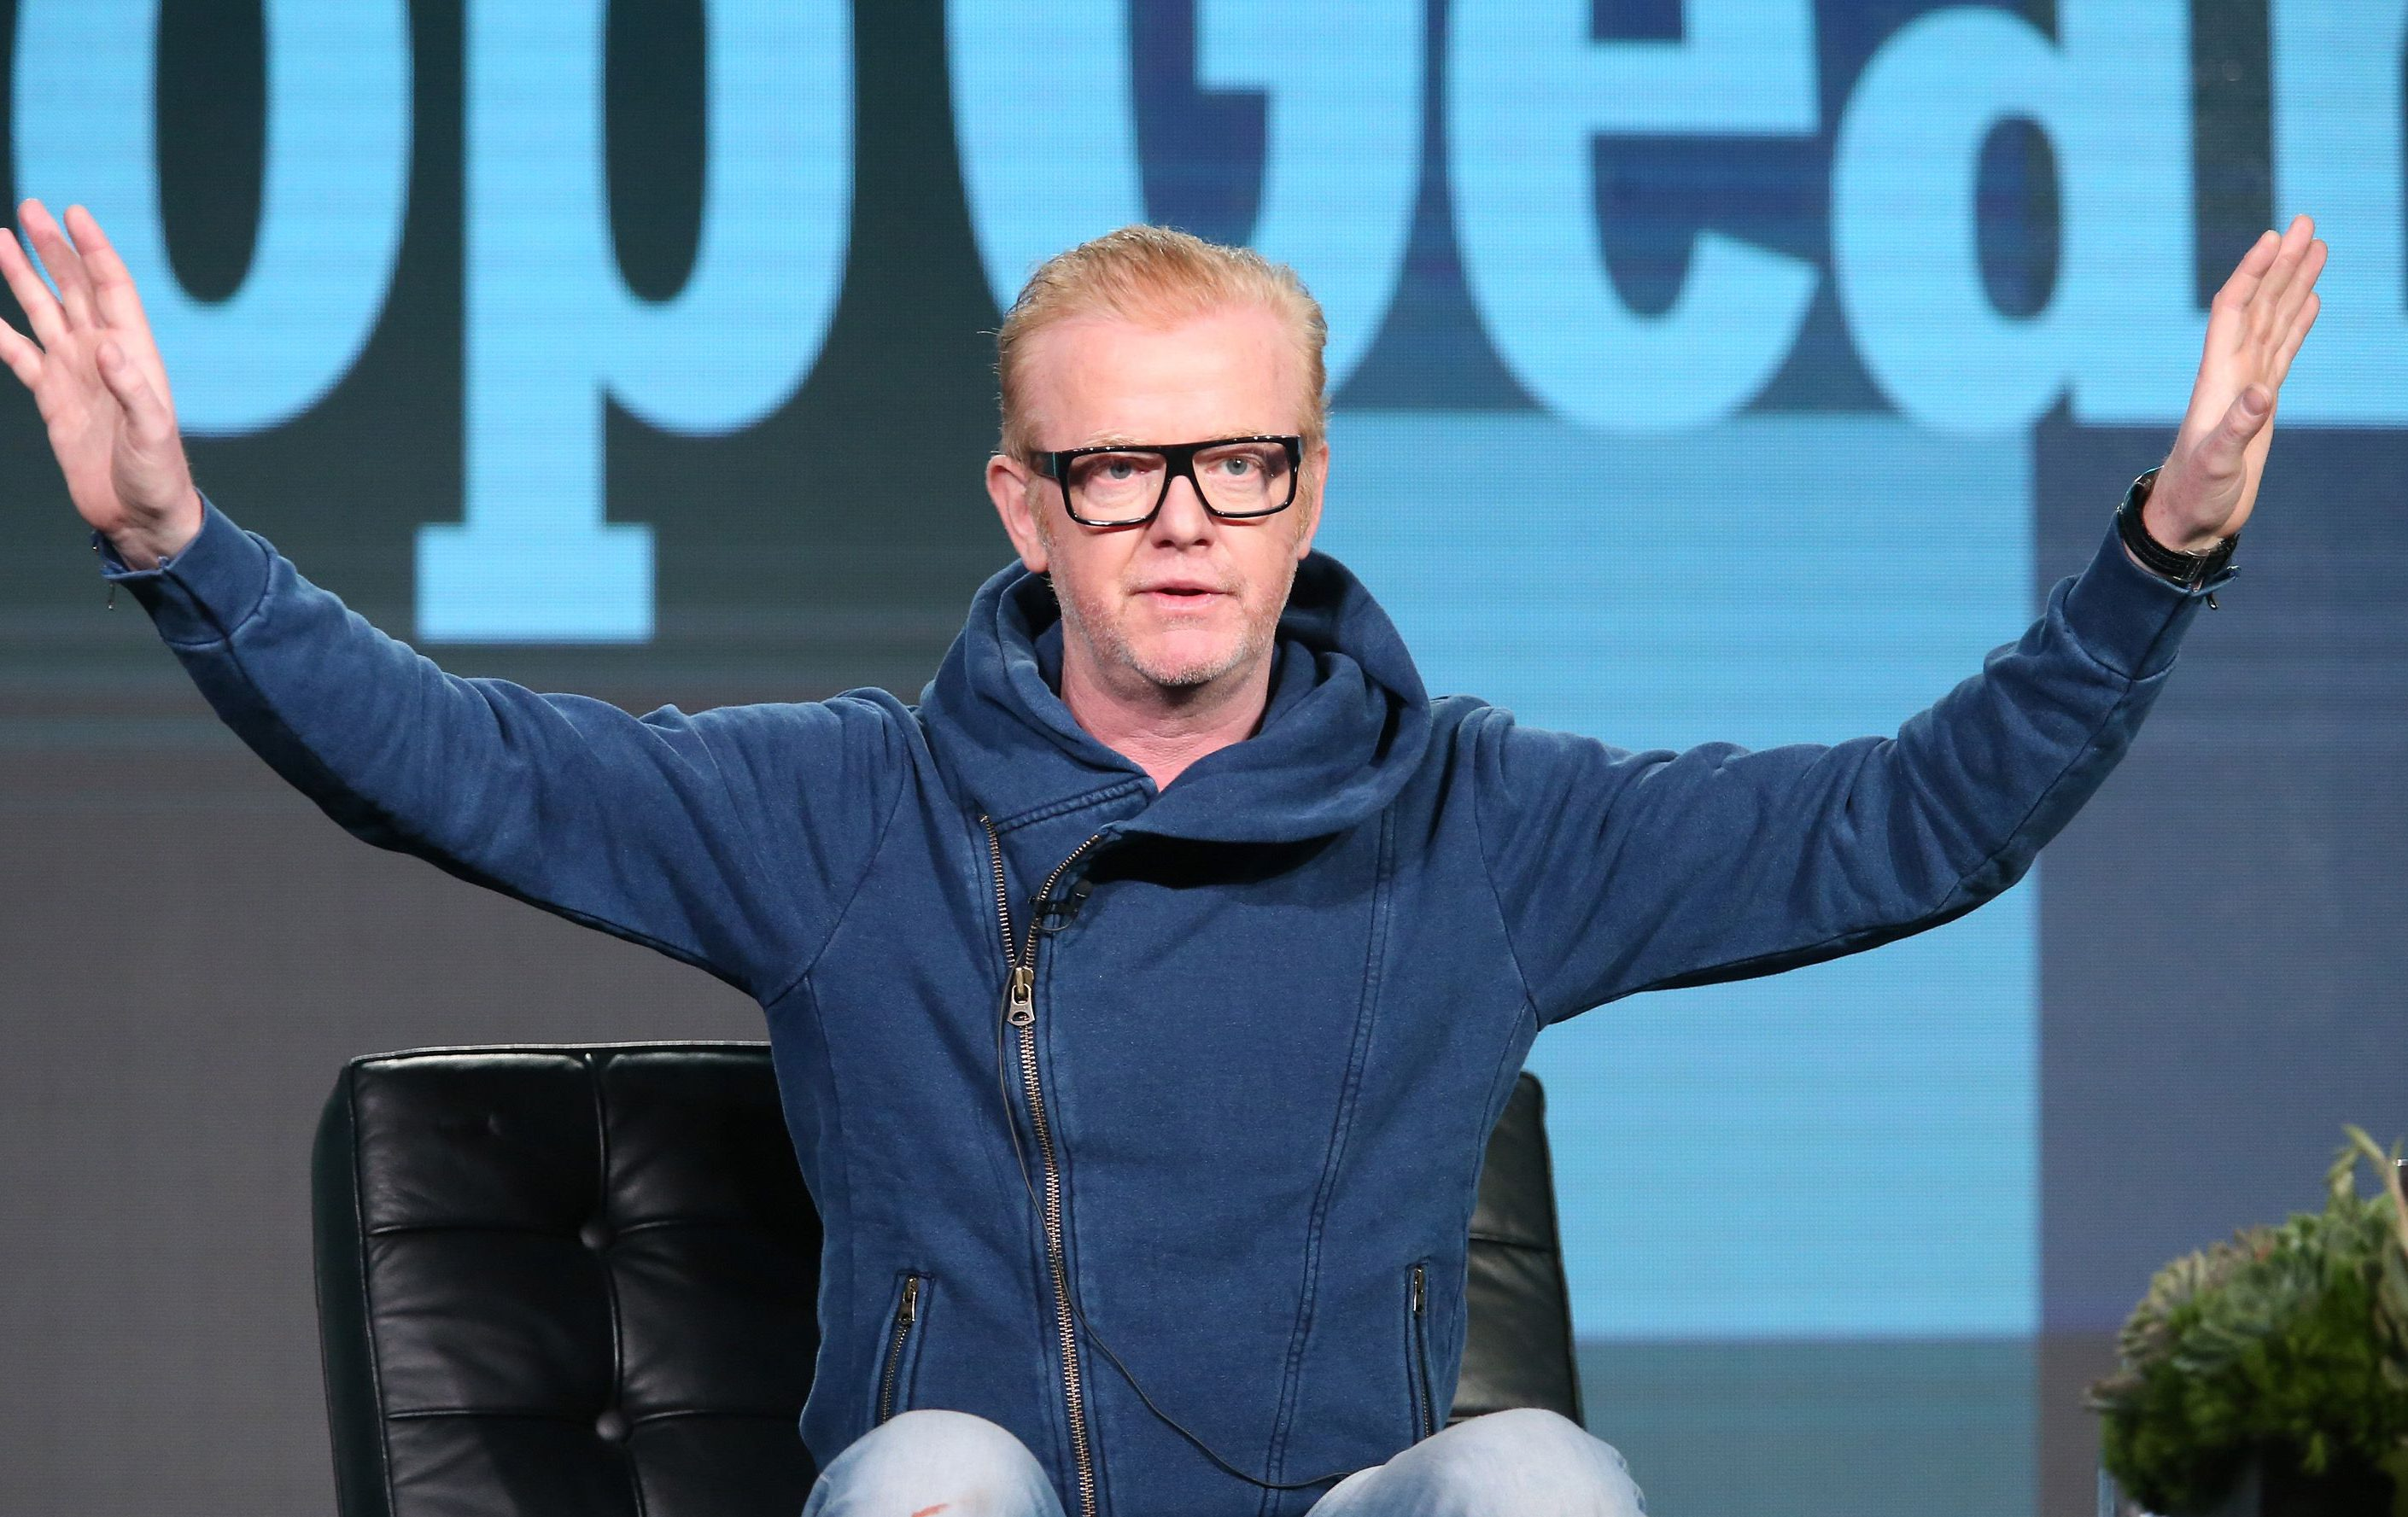 The BBC have sensationally defended Chris Evans after he has come under repeated scrutiny for 'diva' behaviour on Top Gear (Picture: Getty)